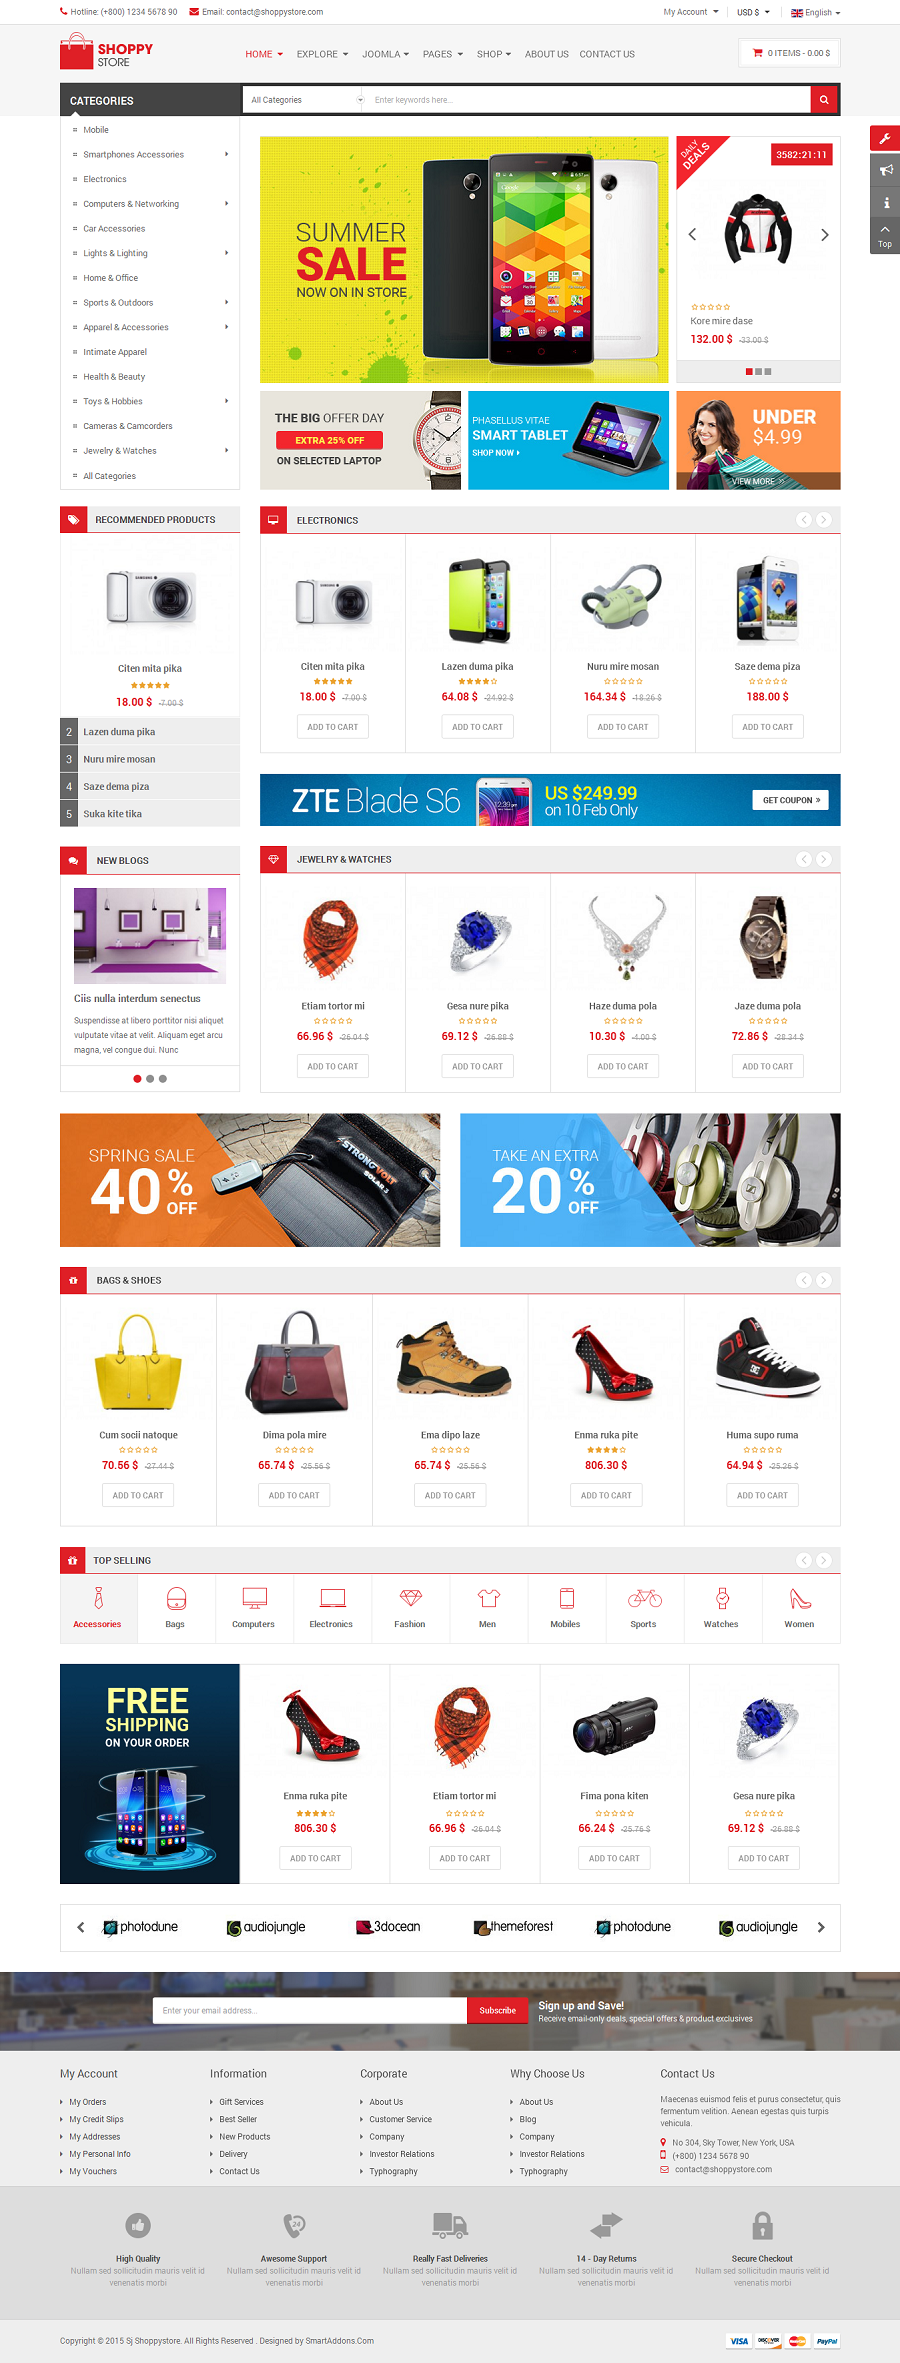 virtuemart marketplace